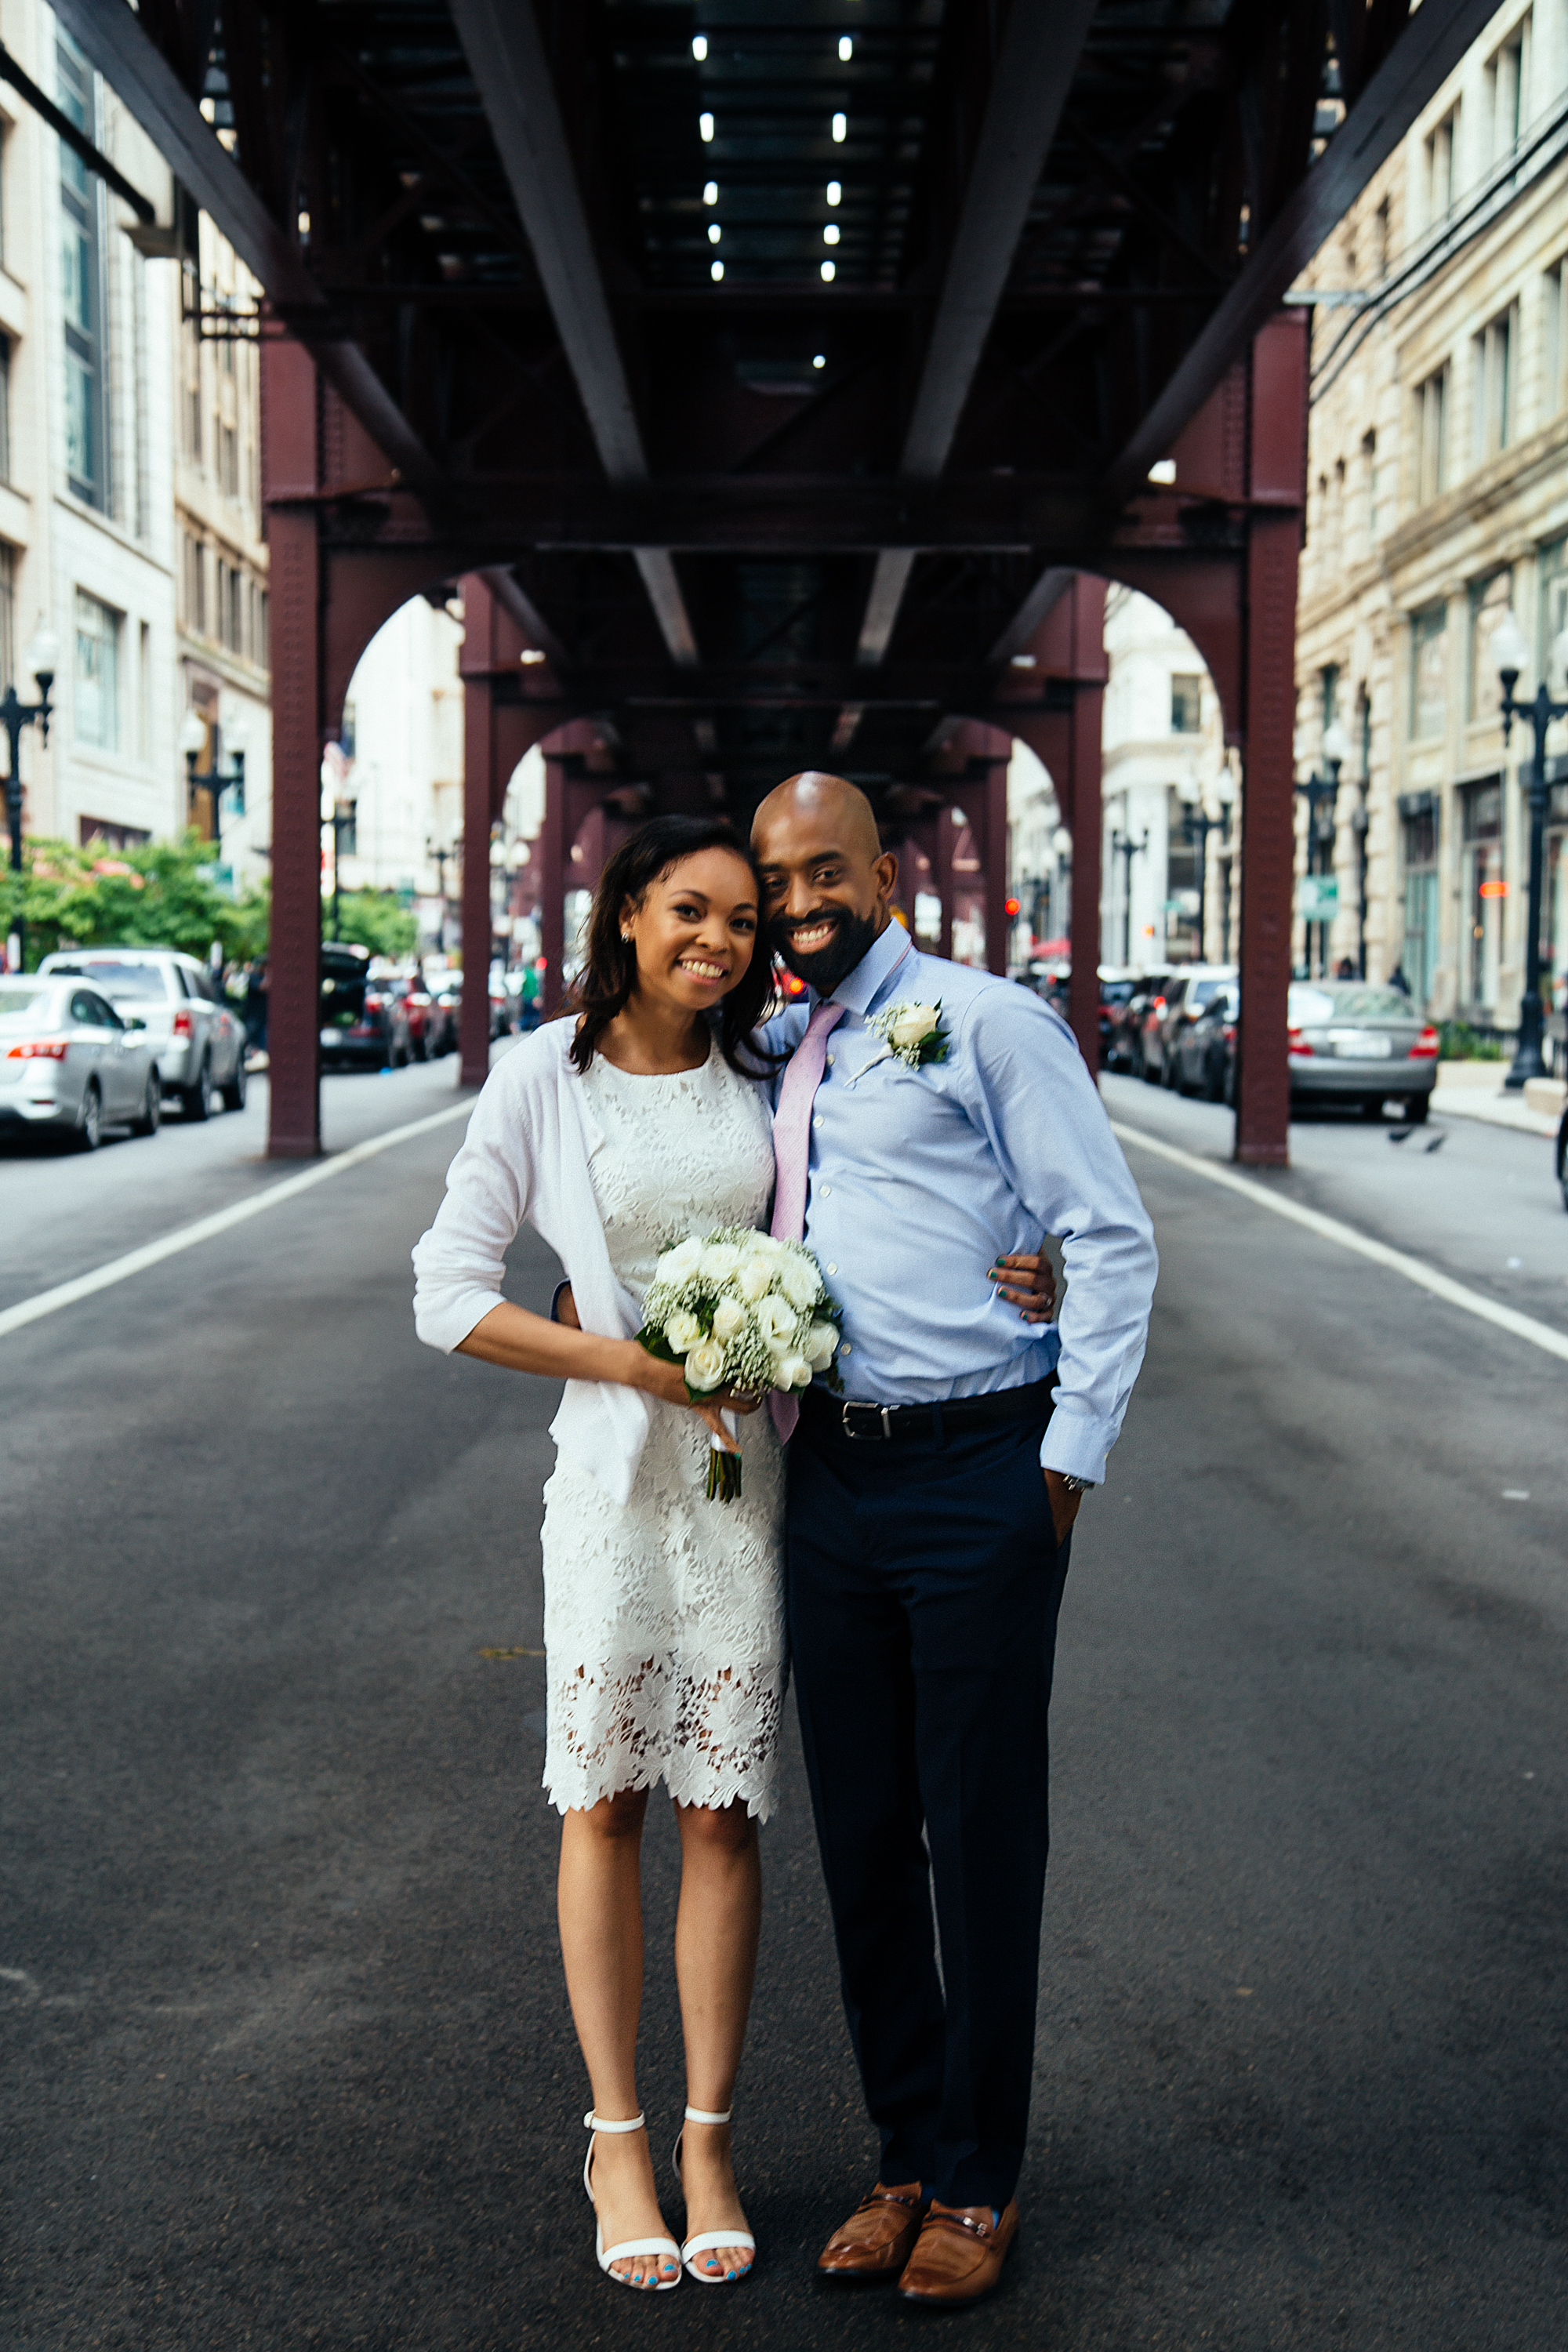 chicago_elopement_tony_brittany-23.jpg